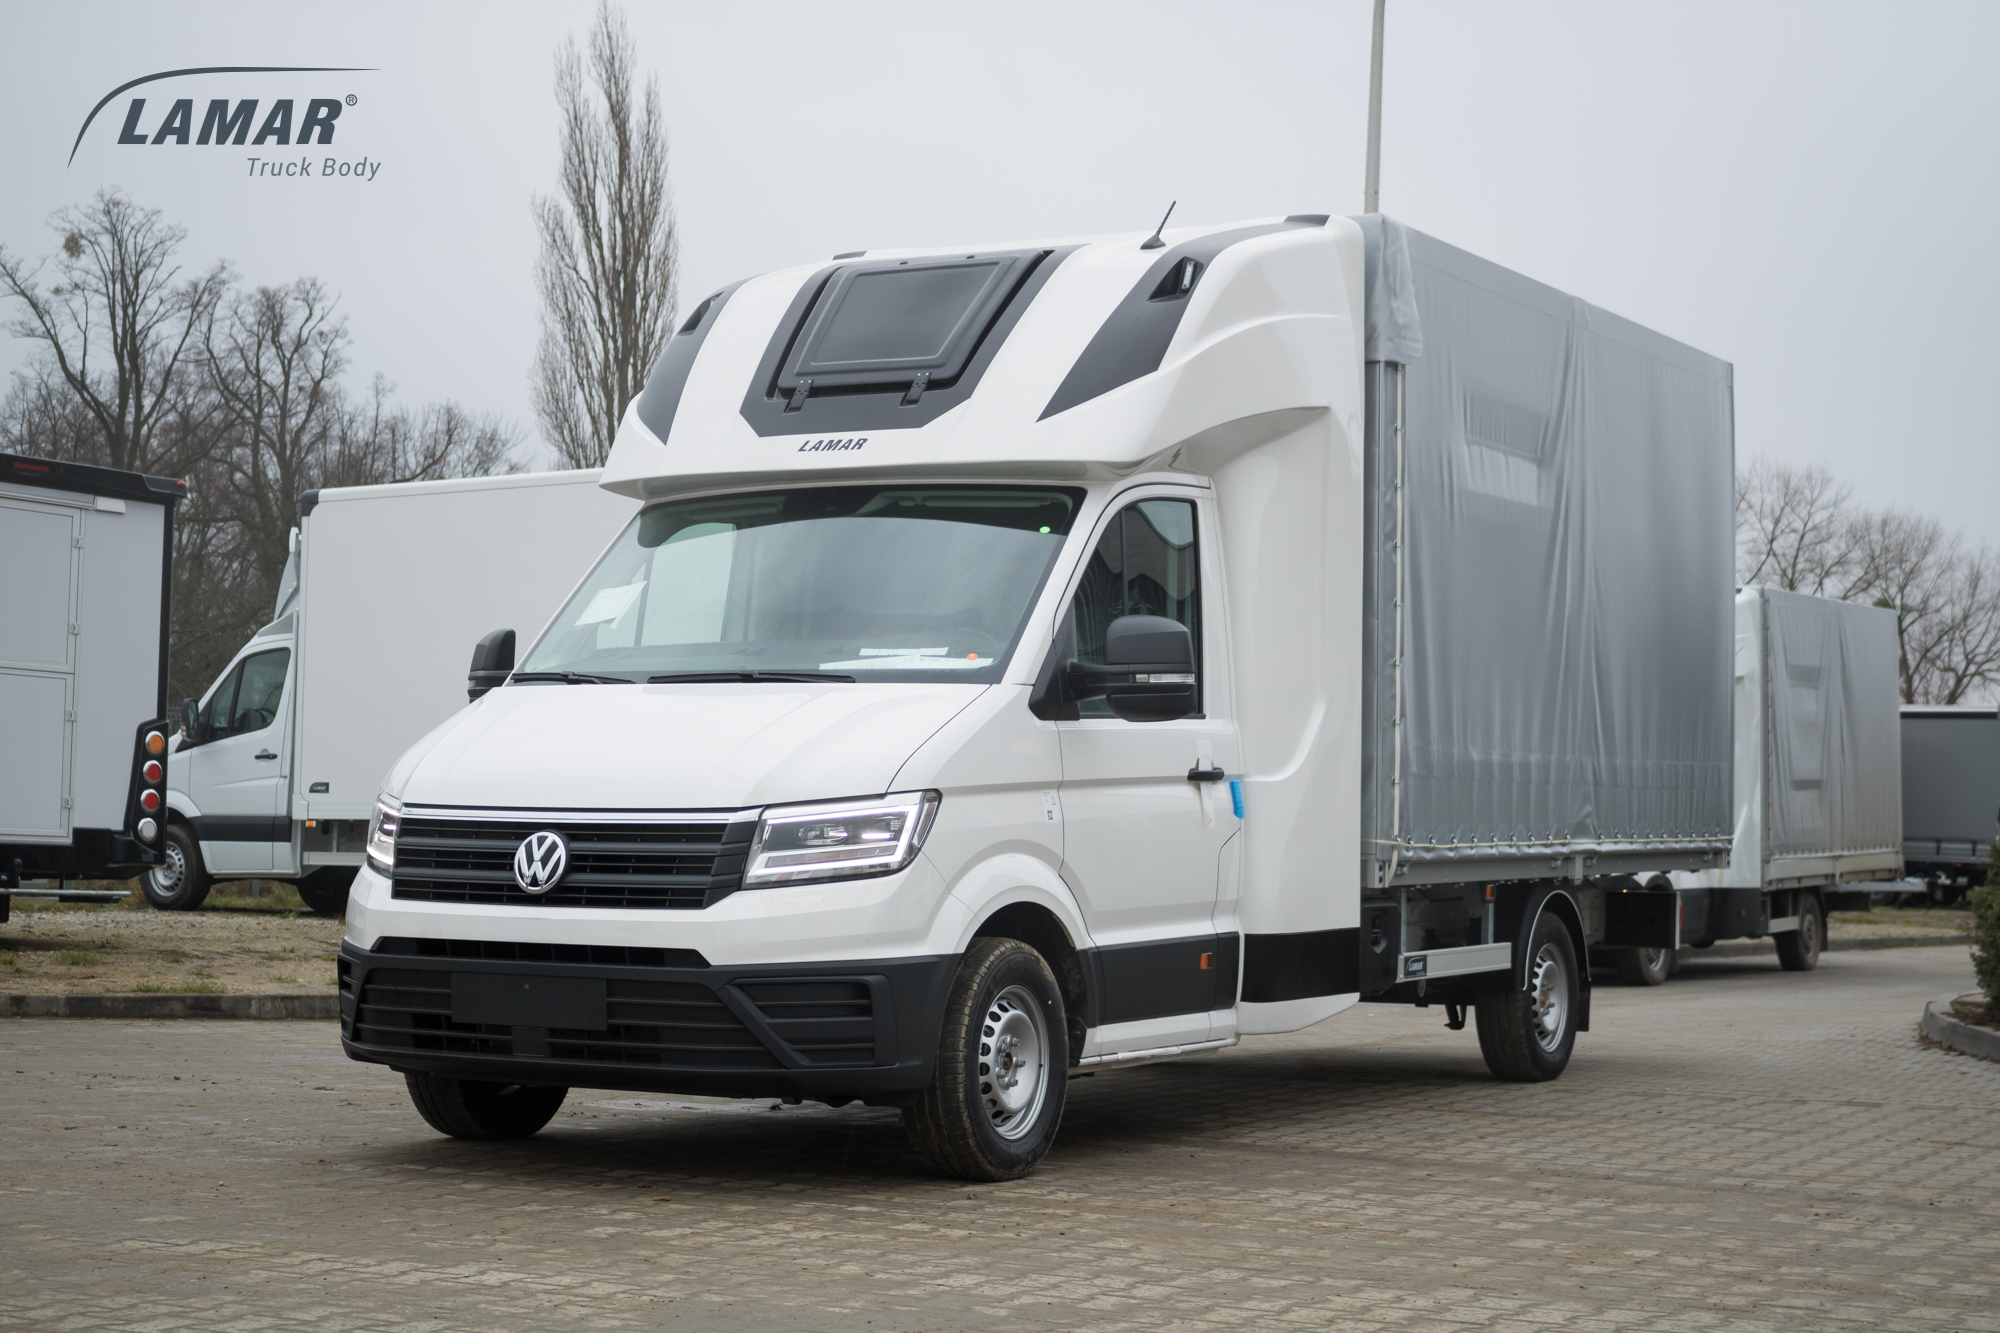 vw crafter 2017 backsleeper lamar lamar. Black Bedroom Furniture Sets. Home Design Ideas